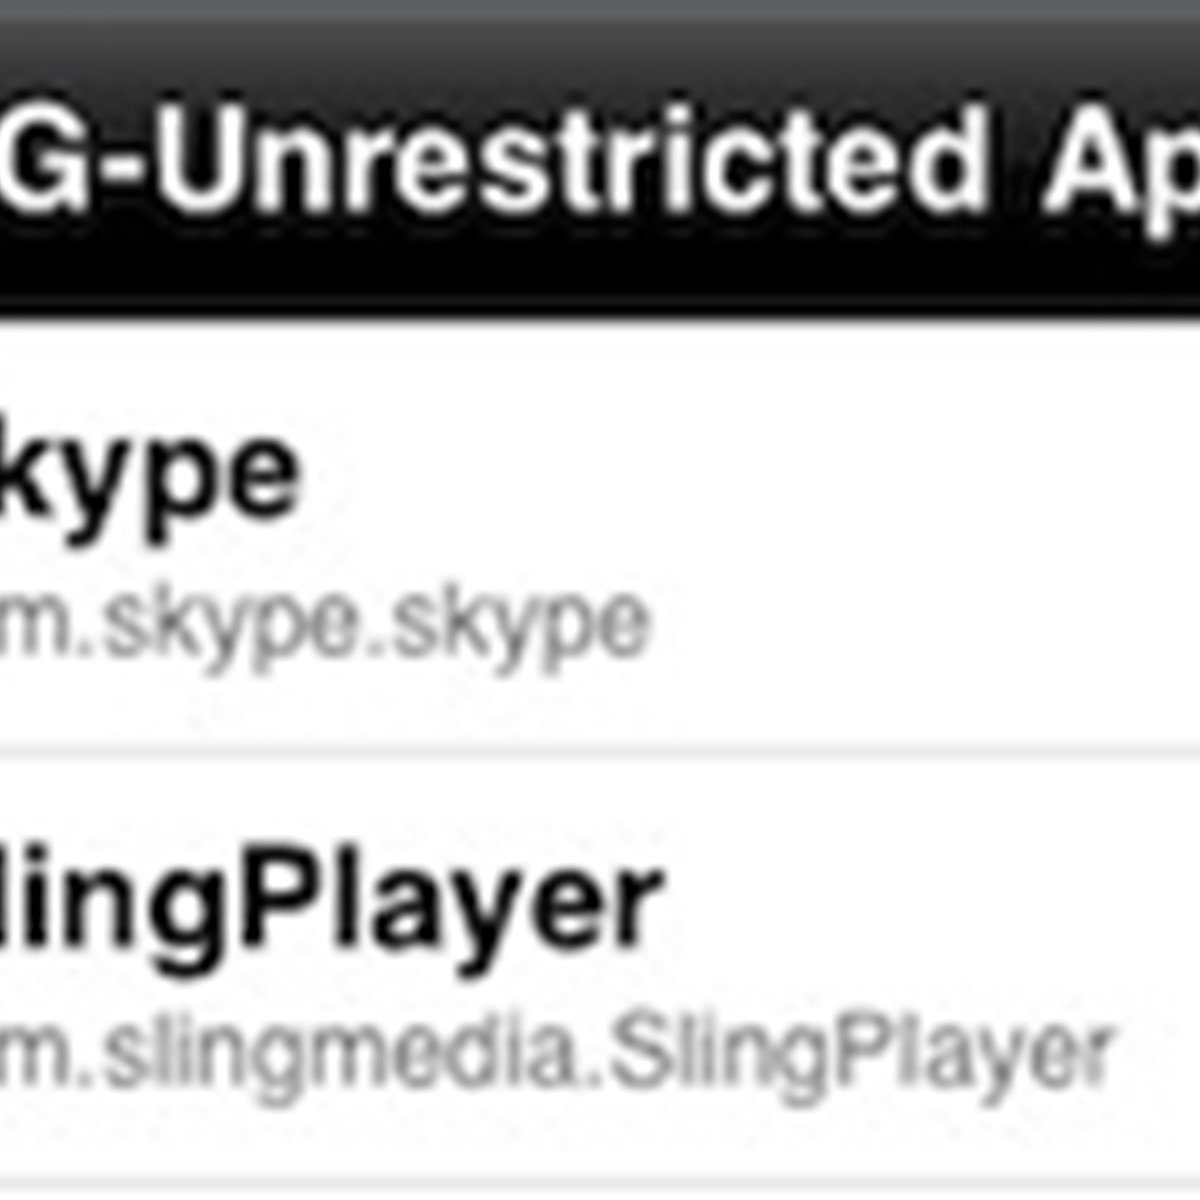 💌 Download 3g unrestrictor free without jailbreak | How To Install